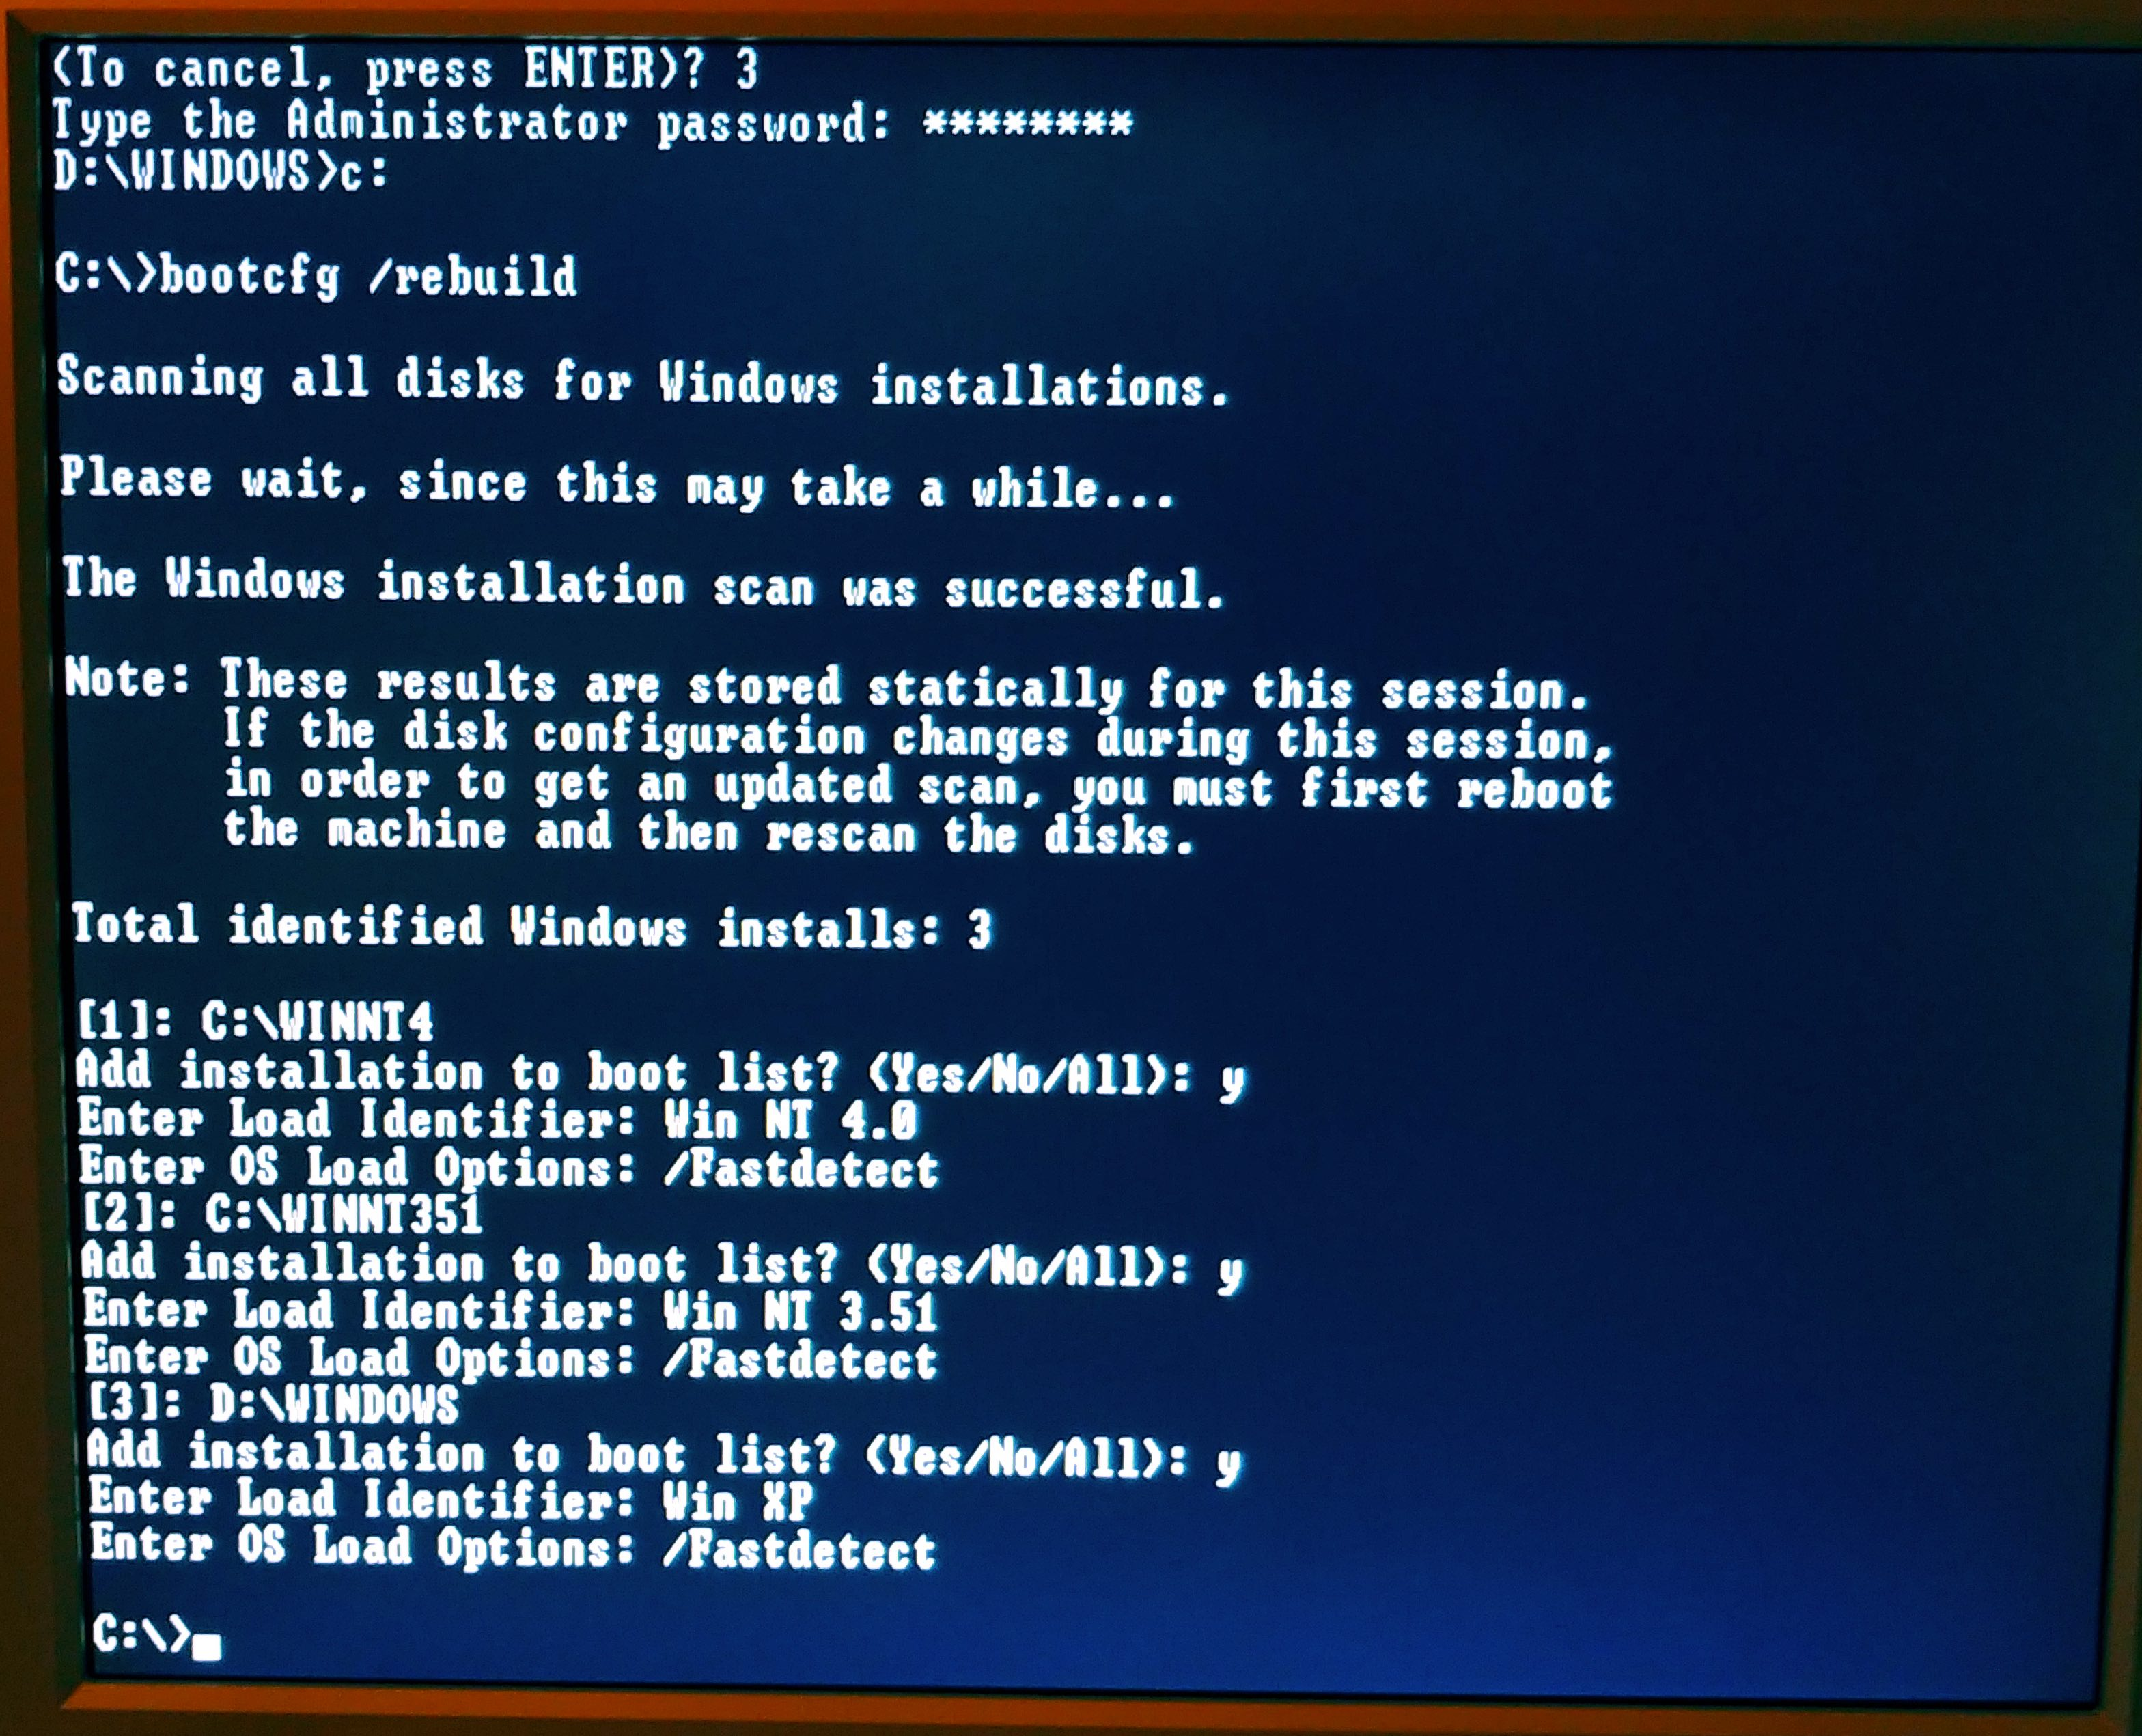 Removing Win 7 boot options entirely from a multi-boot system